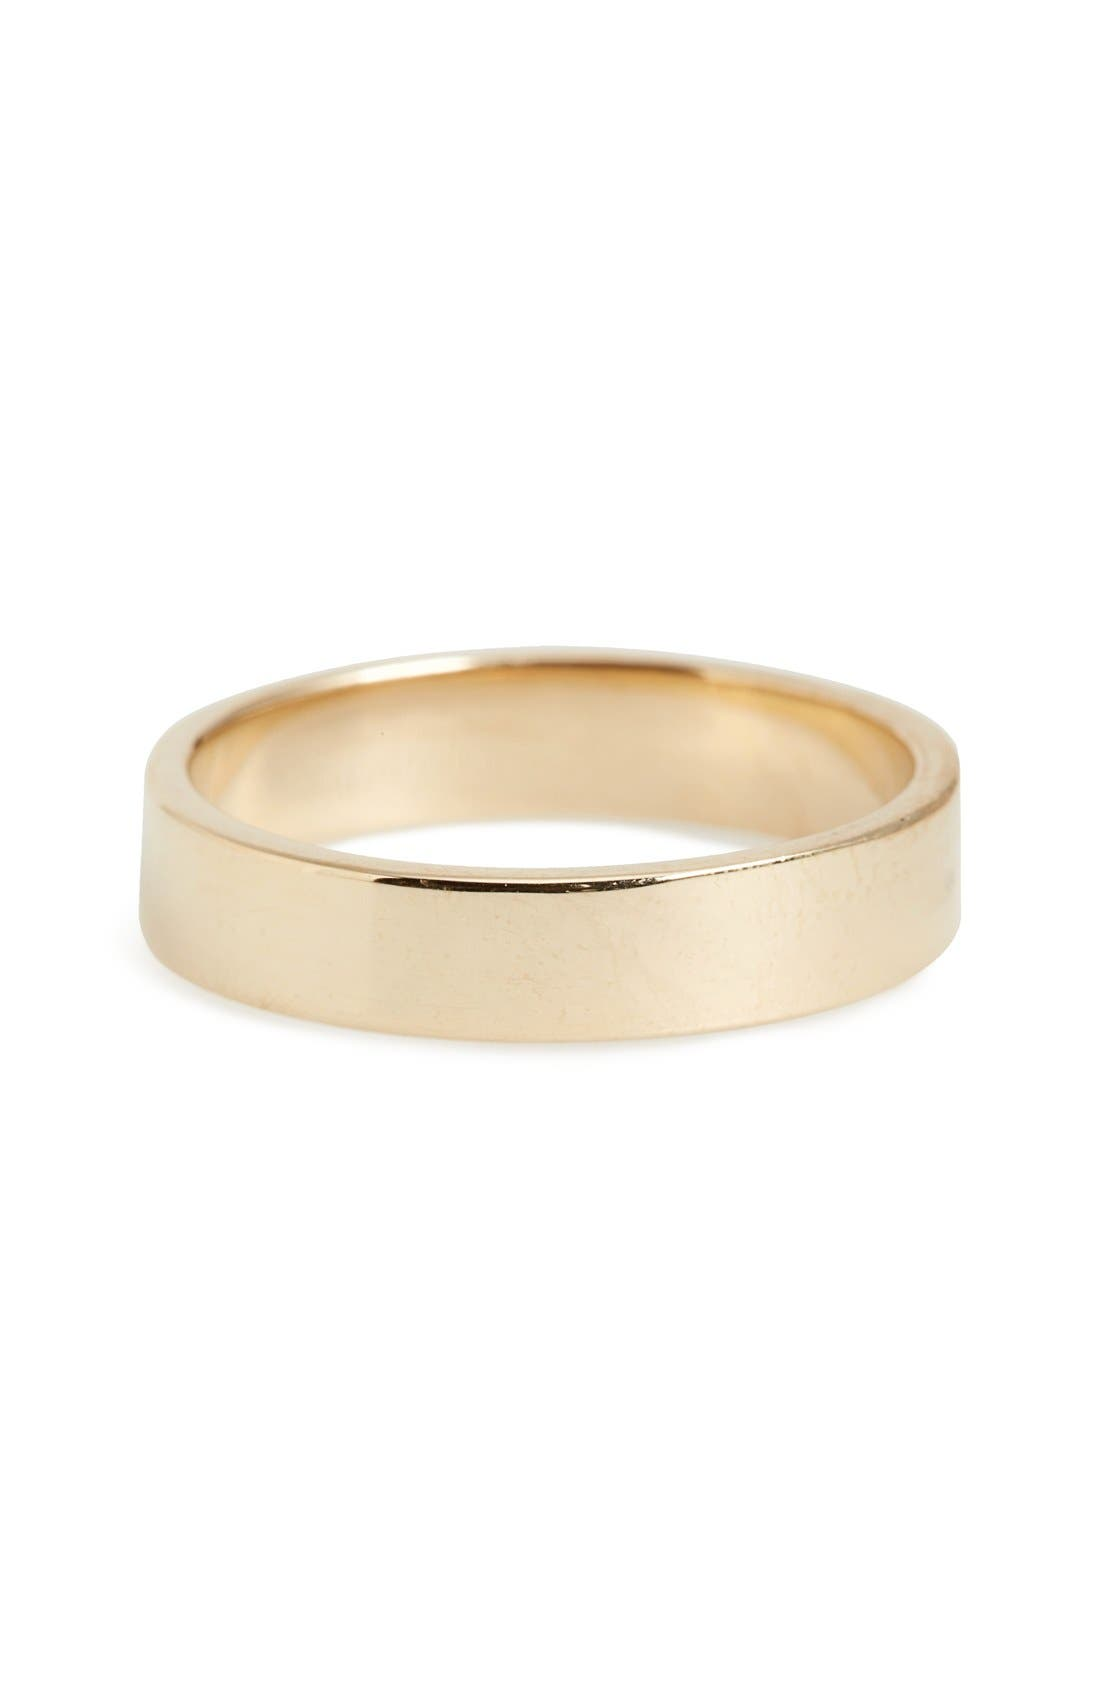 Main Image - WWAKE Harmony® Flat Classic 4mm Shiny Band Ring (Nordstrom Exclusive)